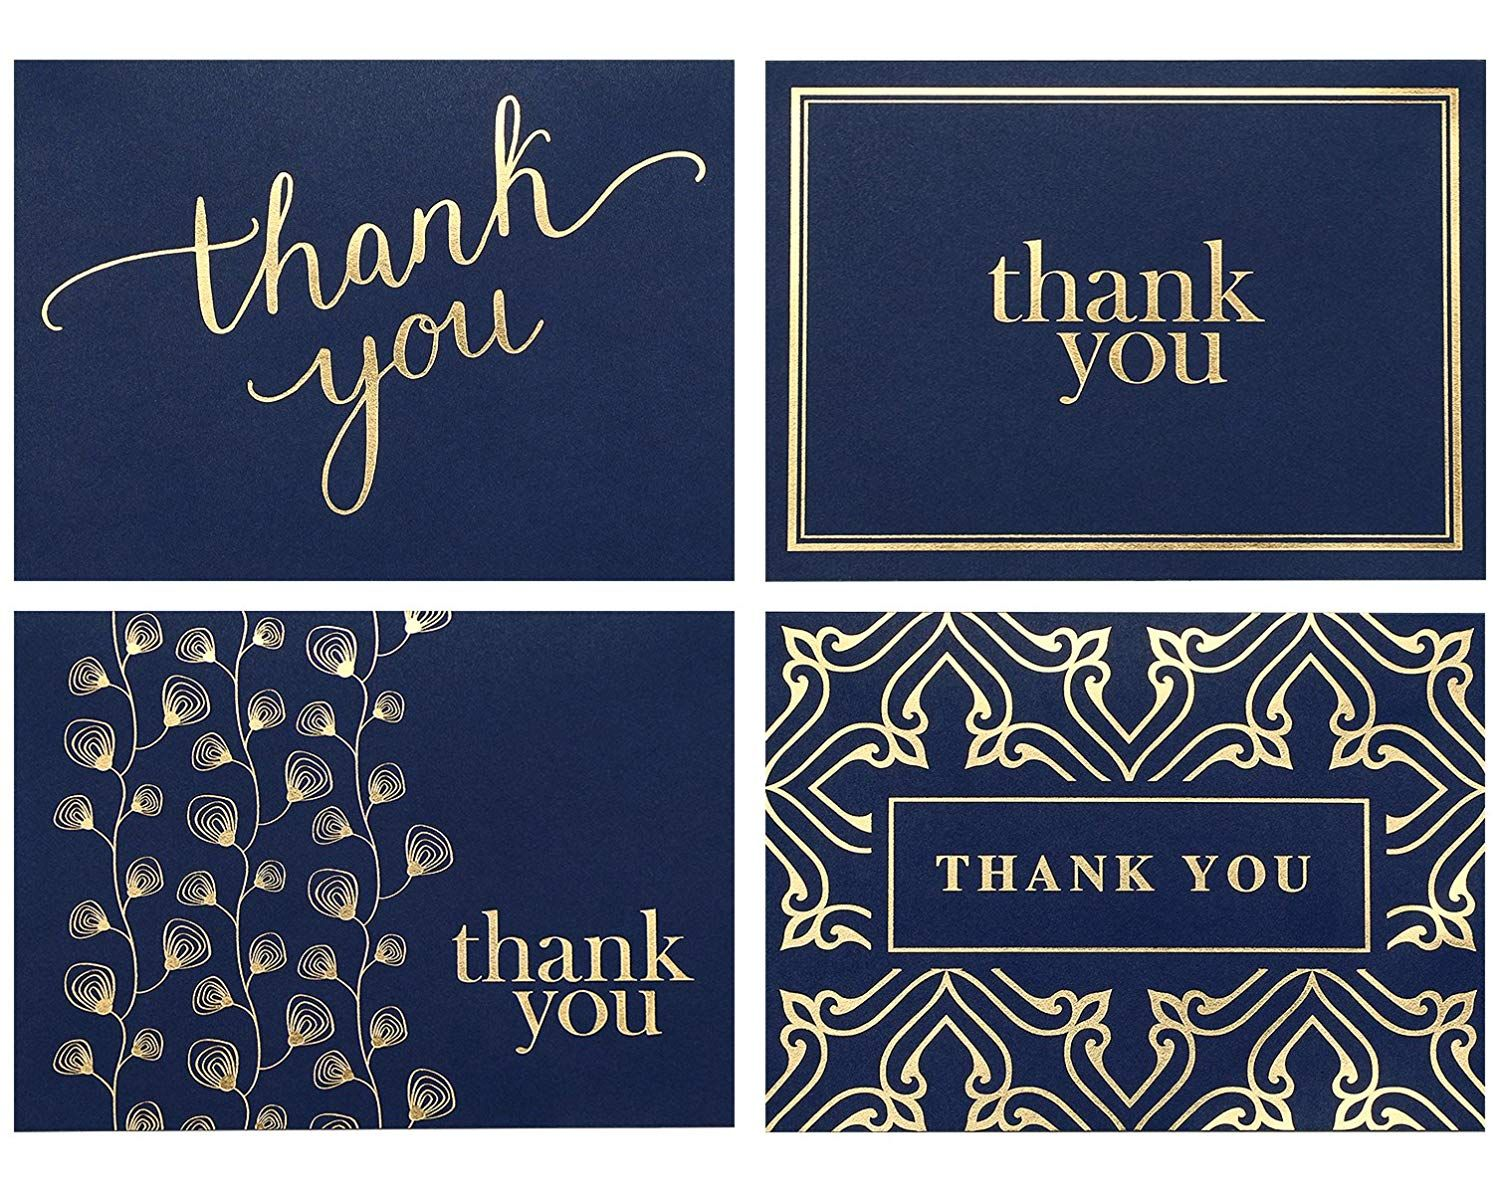 100 Thank You Cards Bulk Thank You Notes Navy Blue Gold Blank Note Cards With Envelope Business Thank You Cards Blank Note Cards Funeral Thank You Notes